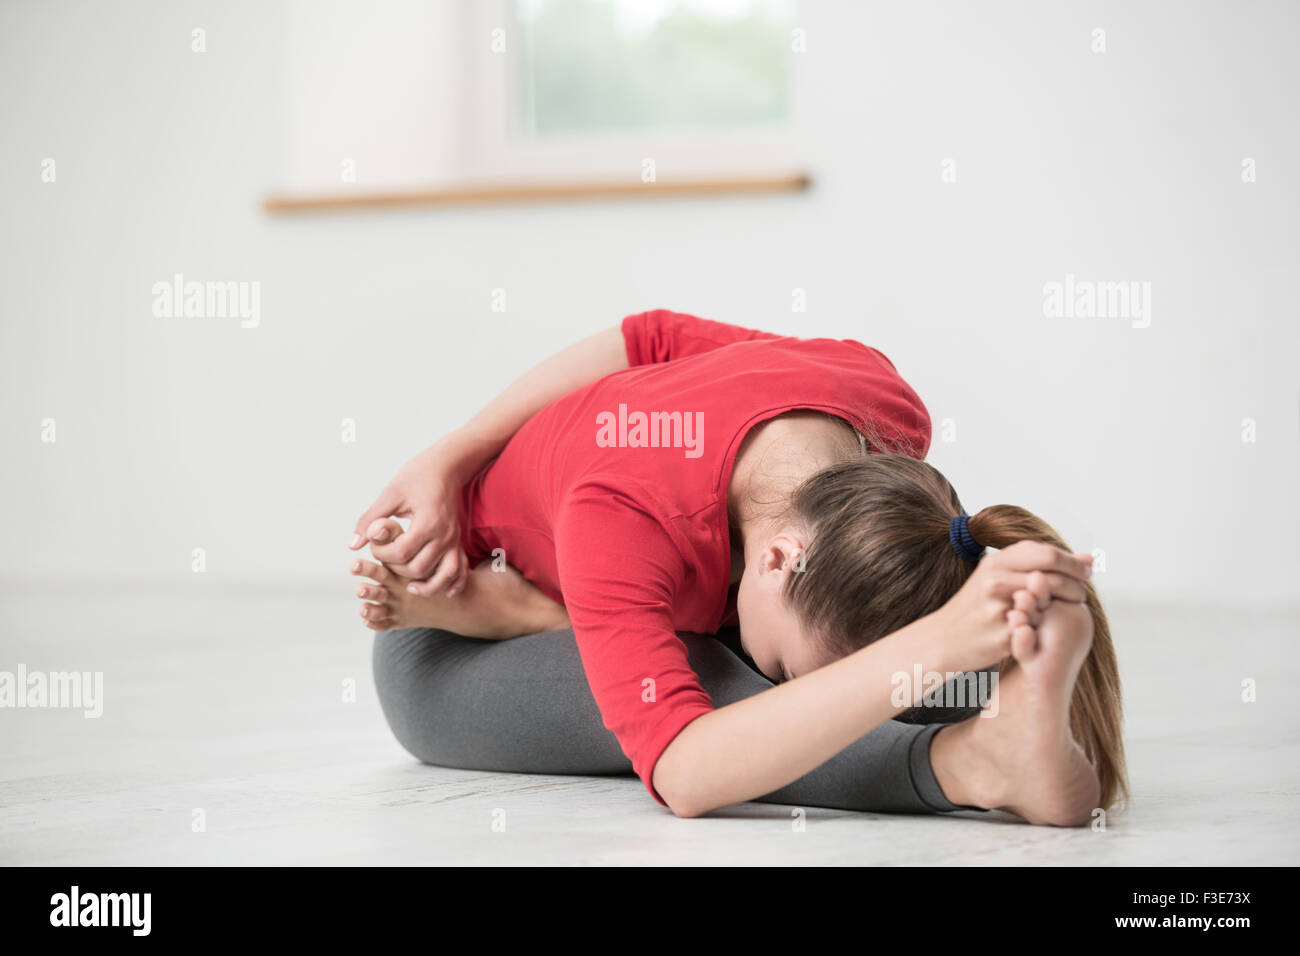 Portrait of a young woman doing stretching exercises in gym - Stock Image